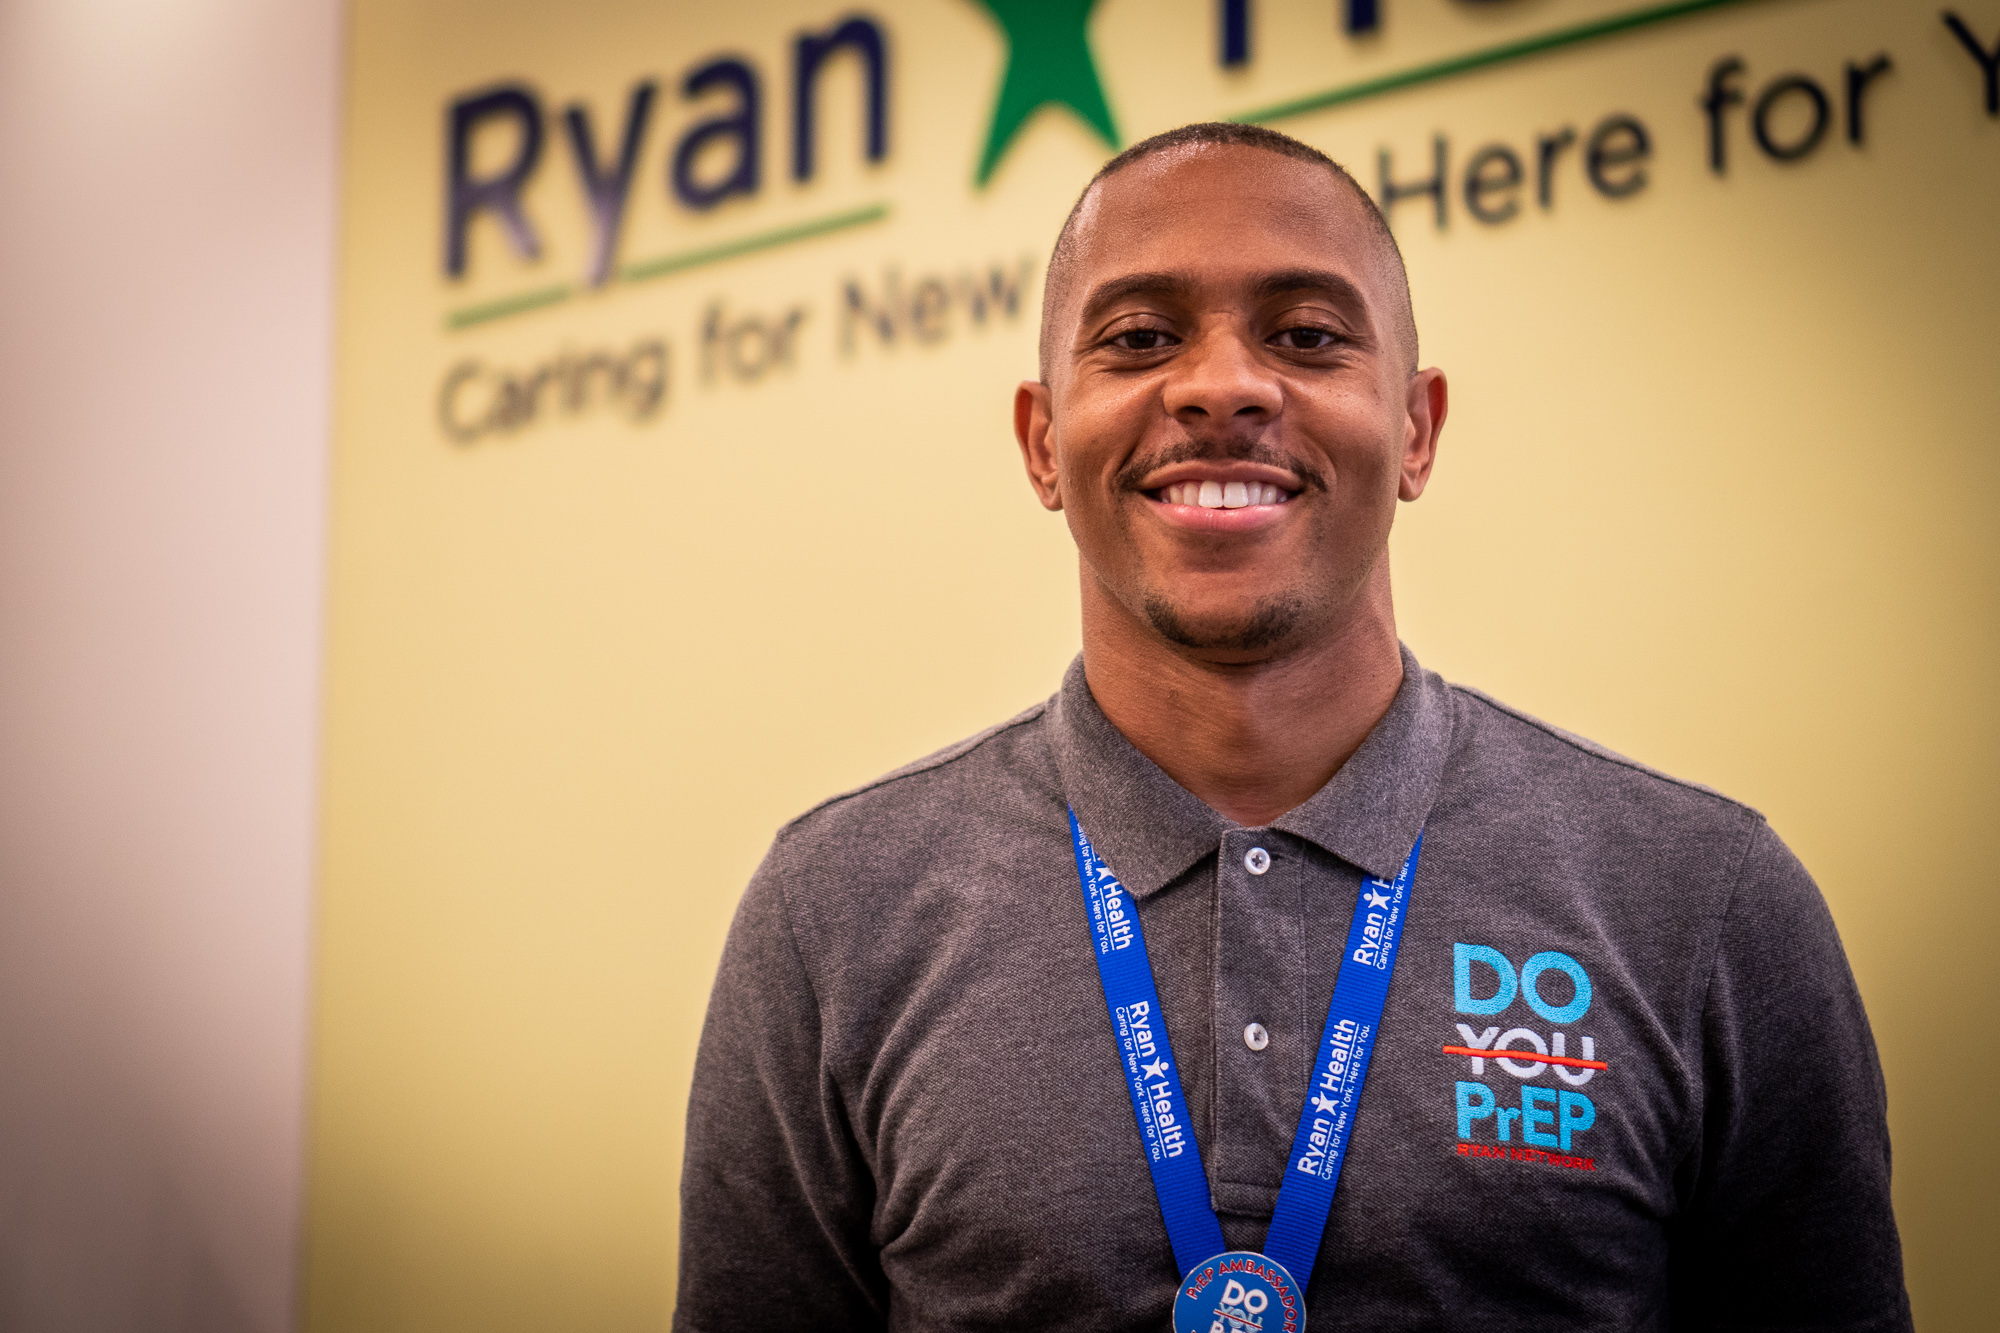 Victor Hogue of Ryan Health has worked with PrEP since before it was approved by the FDA and still does outreach to get people to realize its benefits.